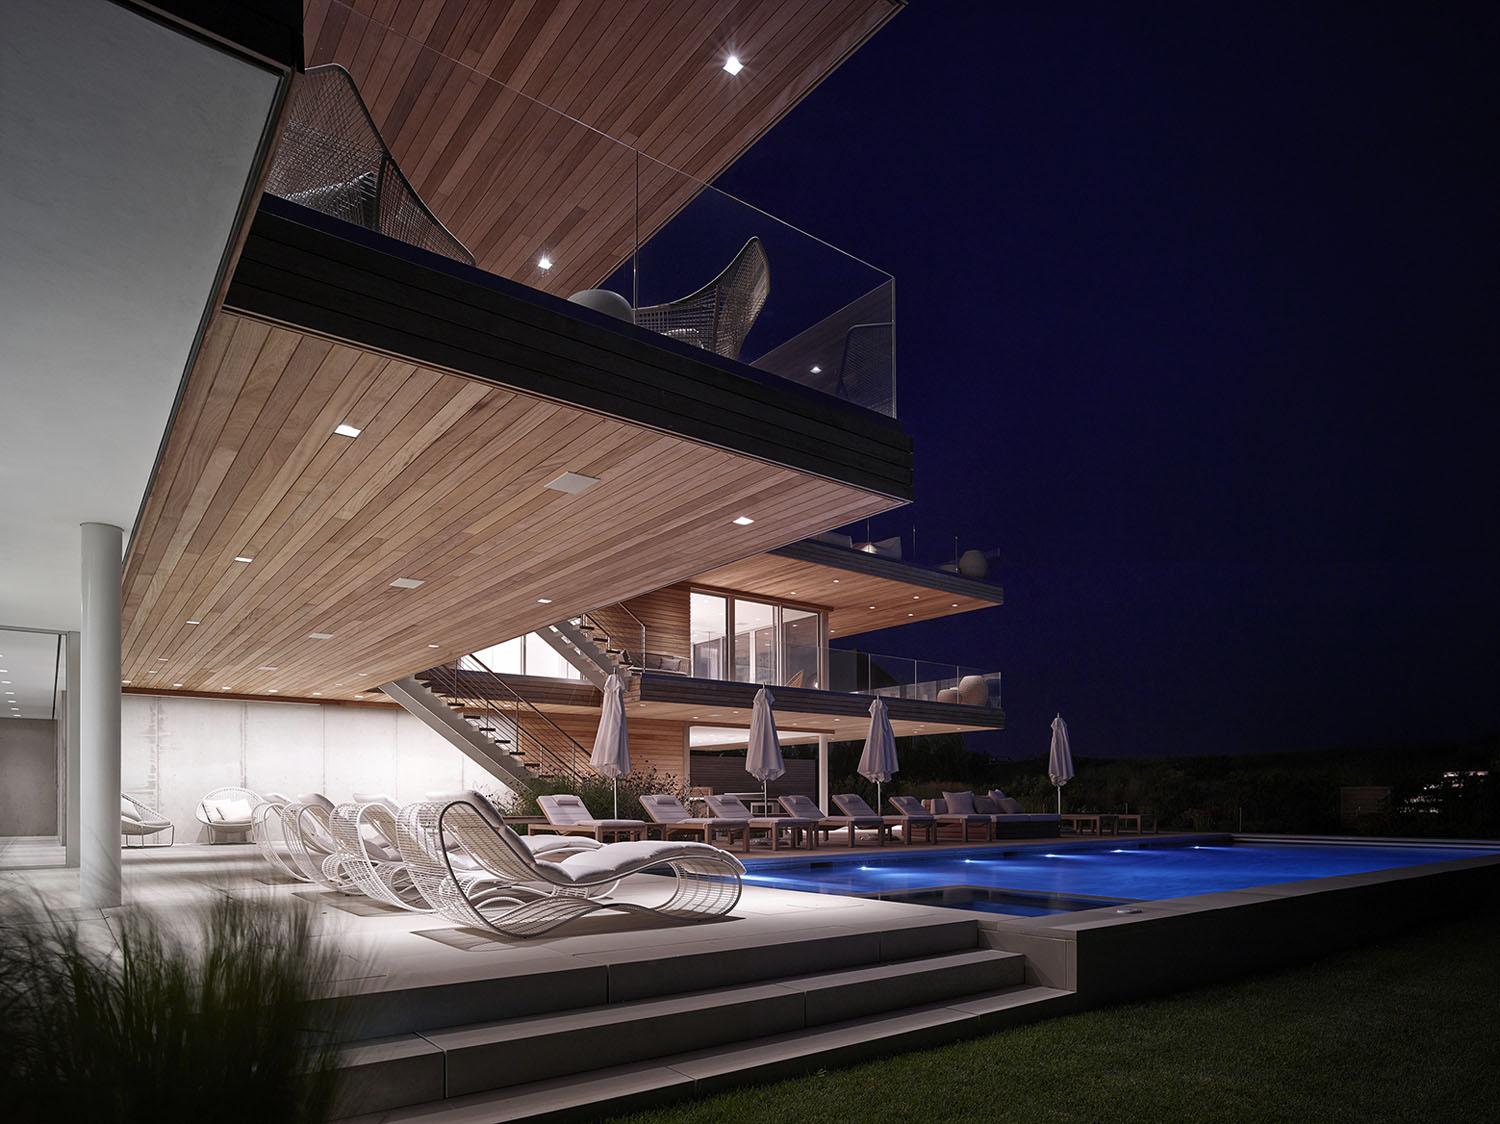 mm_Ocean Deck House design by Stelle Lomont Rouhani Architects_06